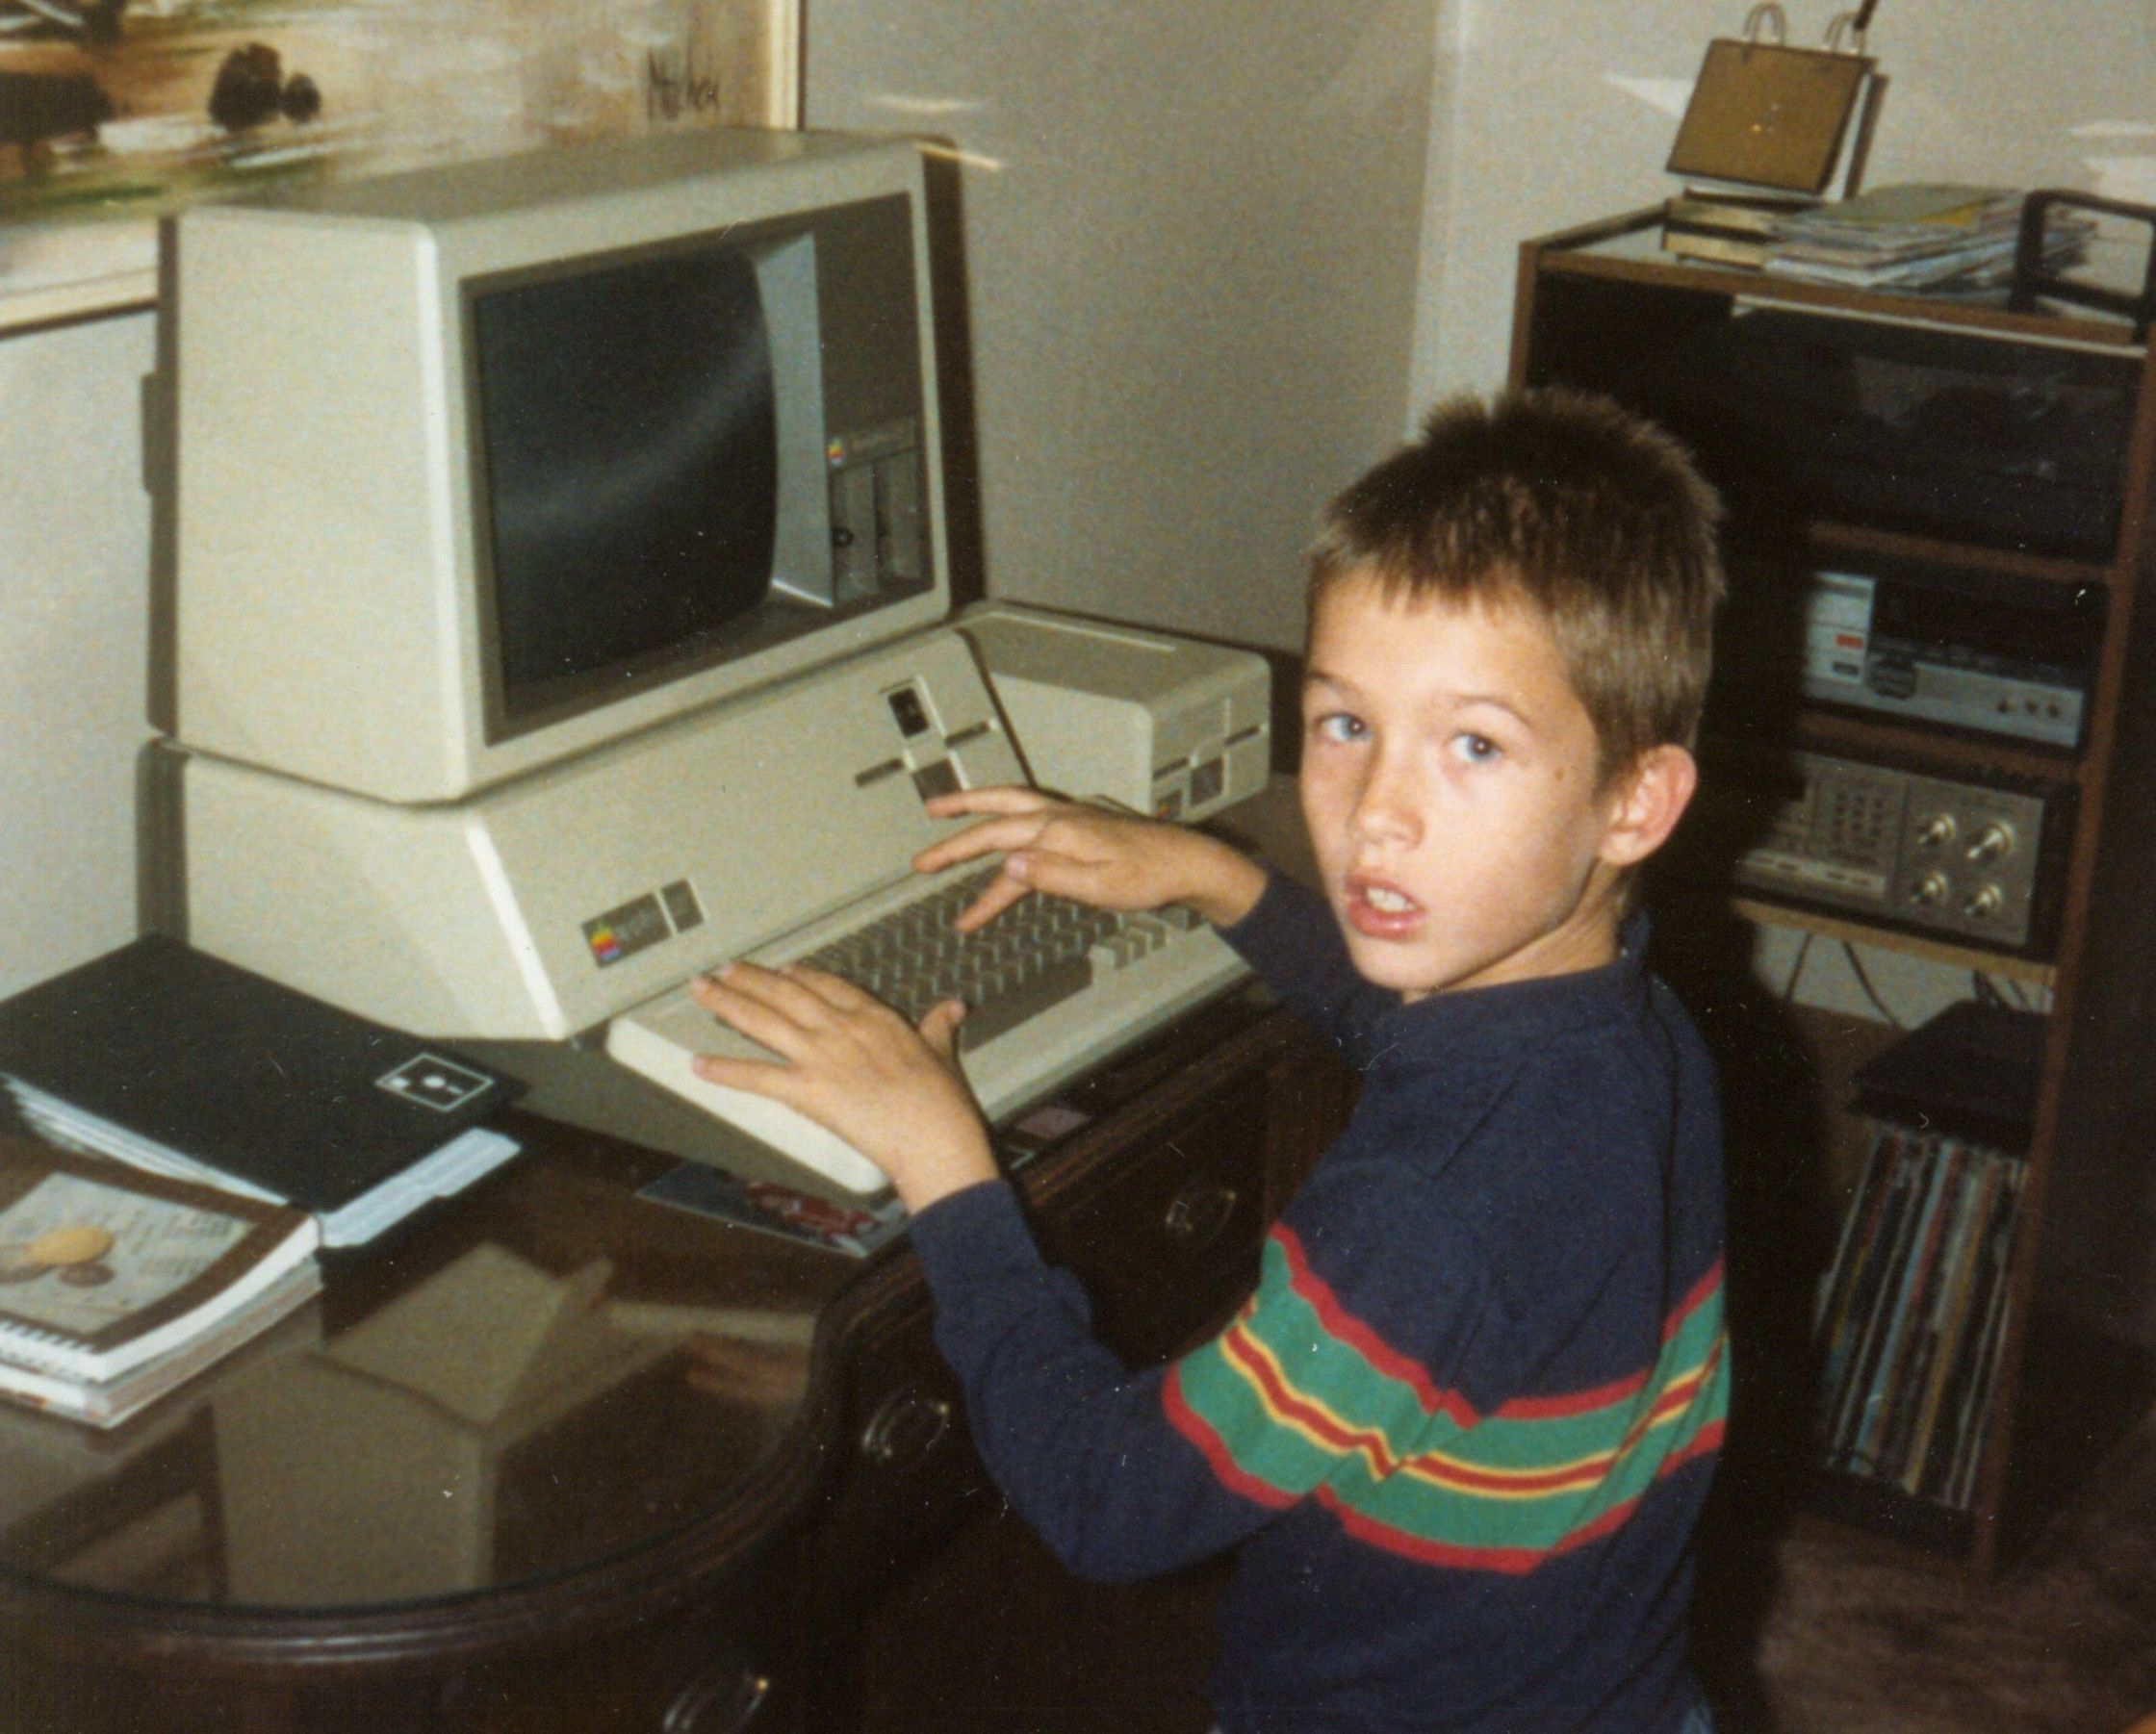 David Martin with his first computer, an Apple III in 1988